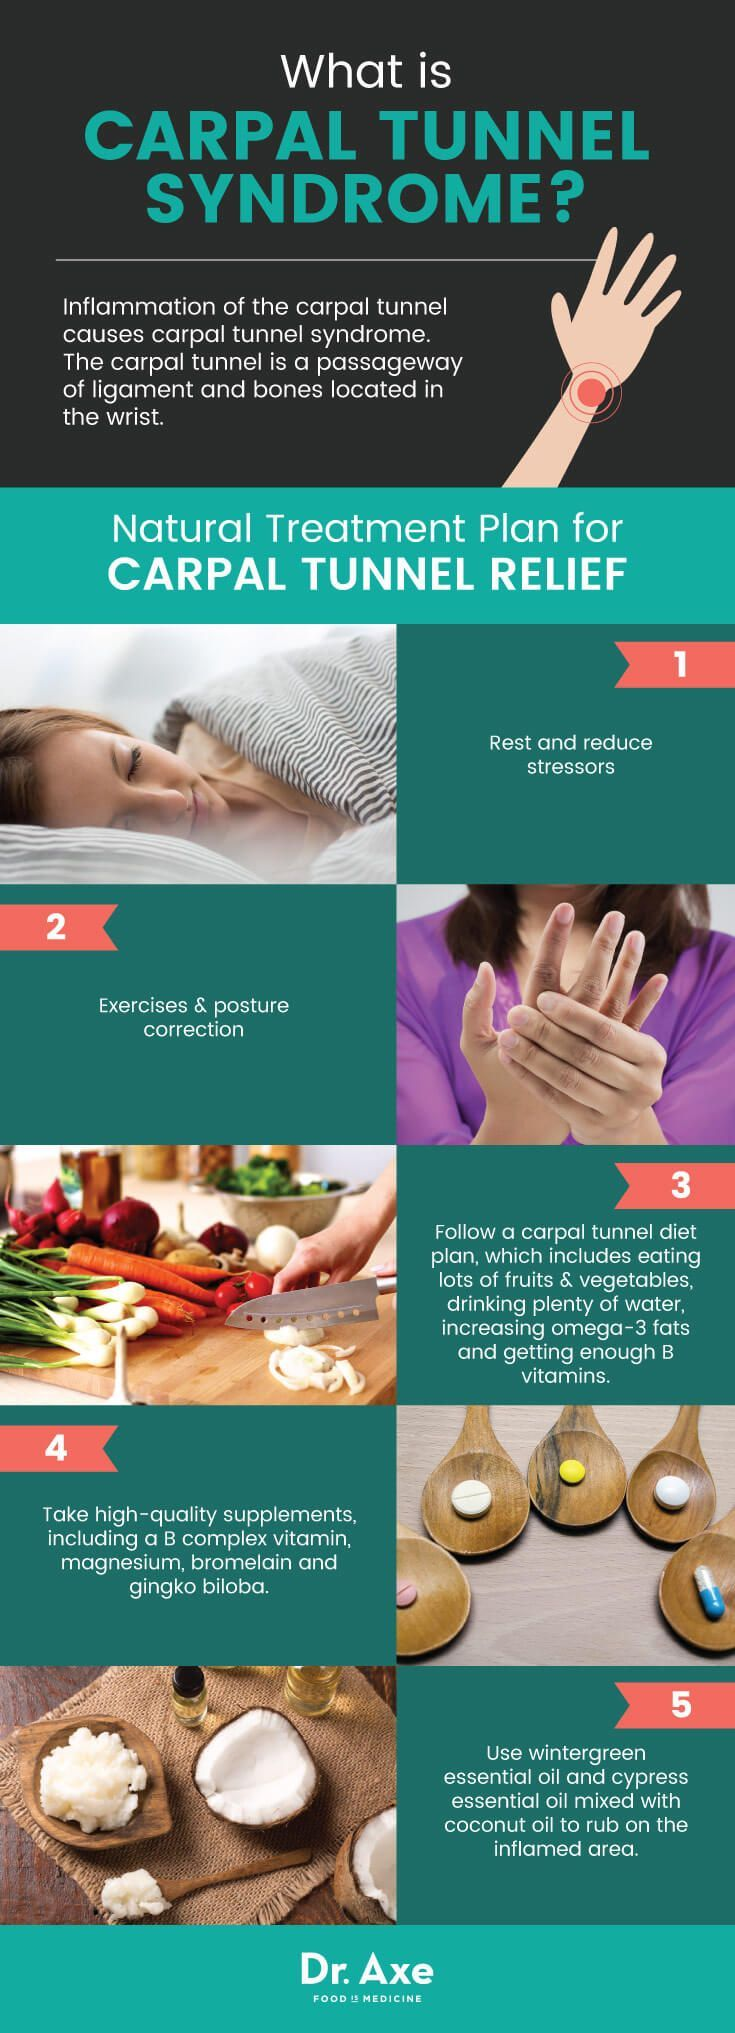 Natural treatment plan for carpal tunnel